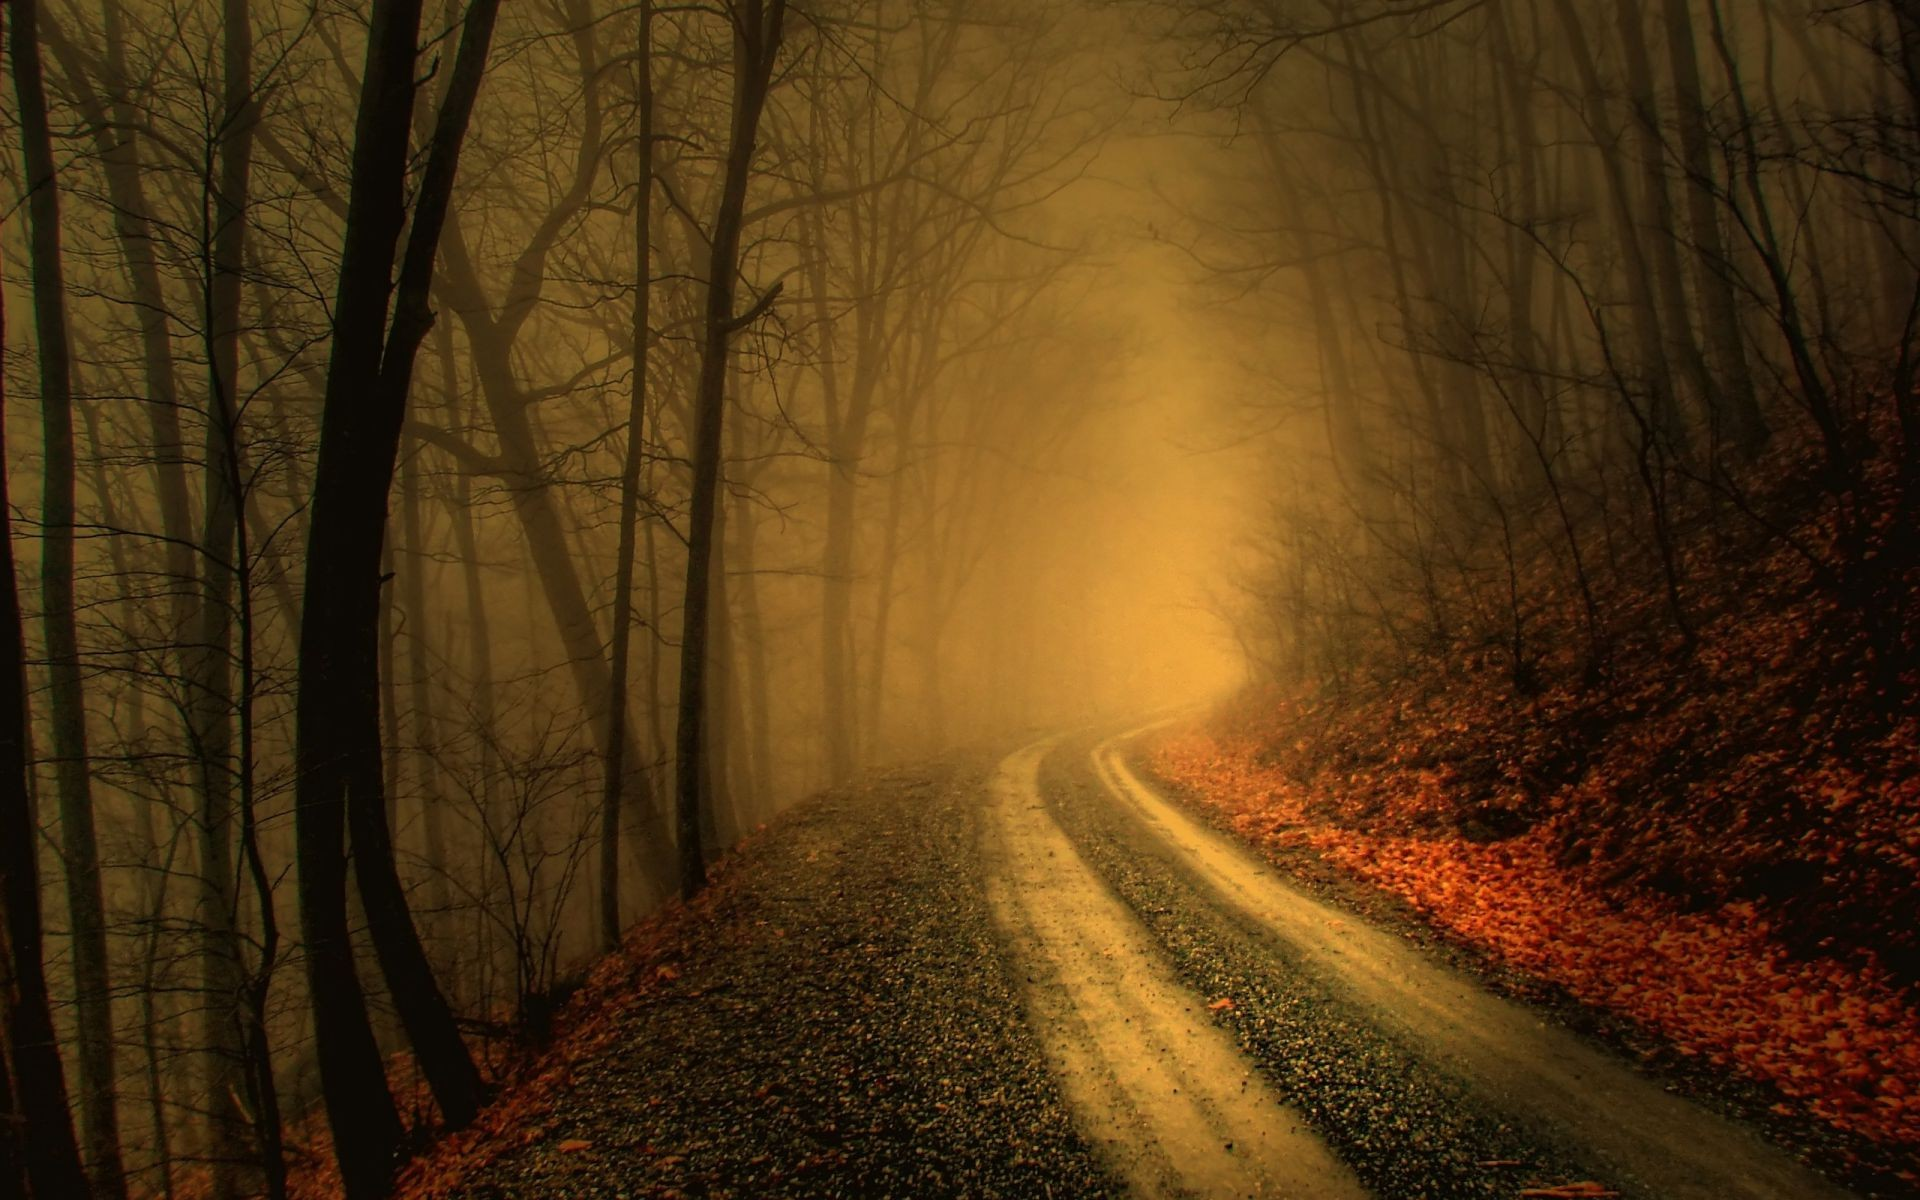 the darkness of the damp autumn road